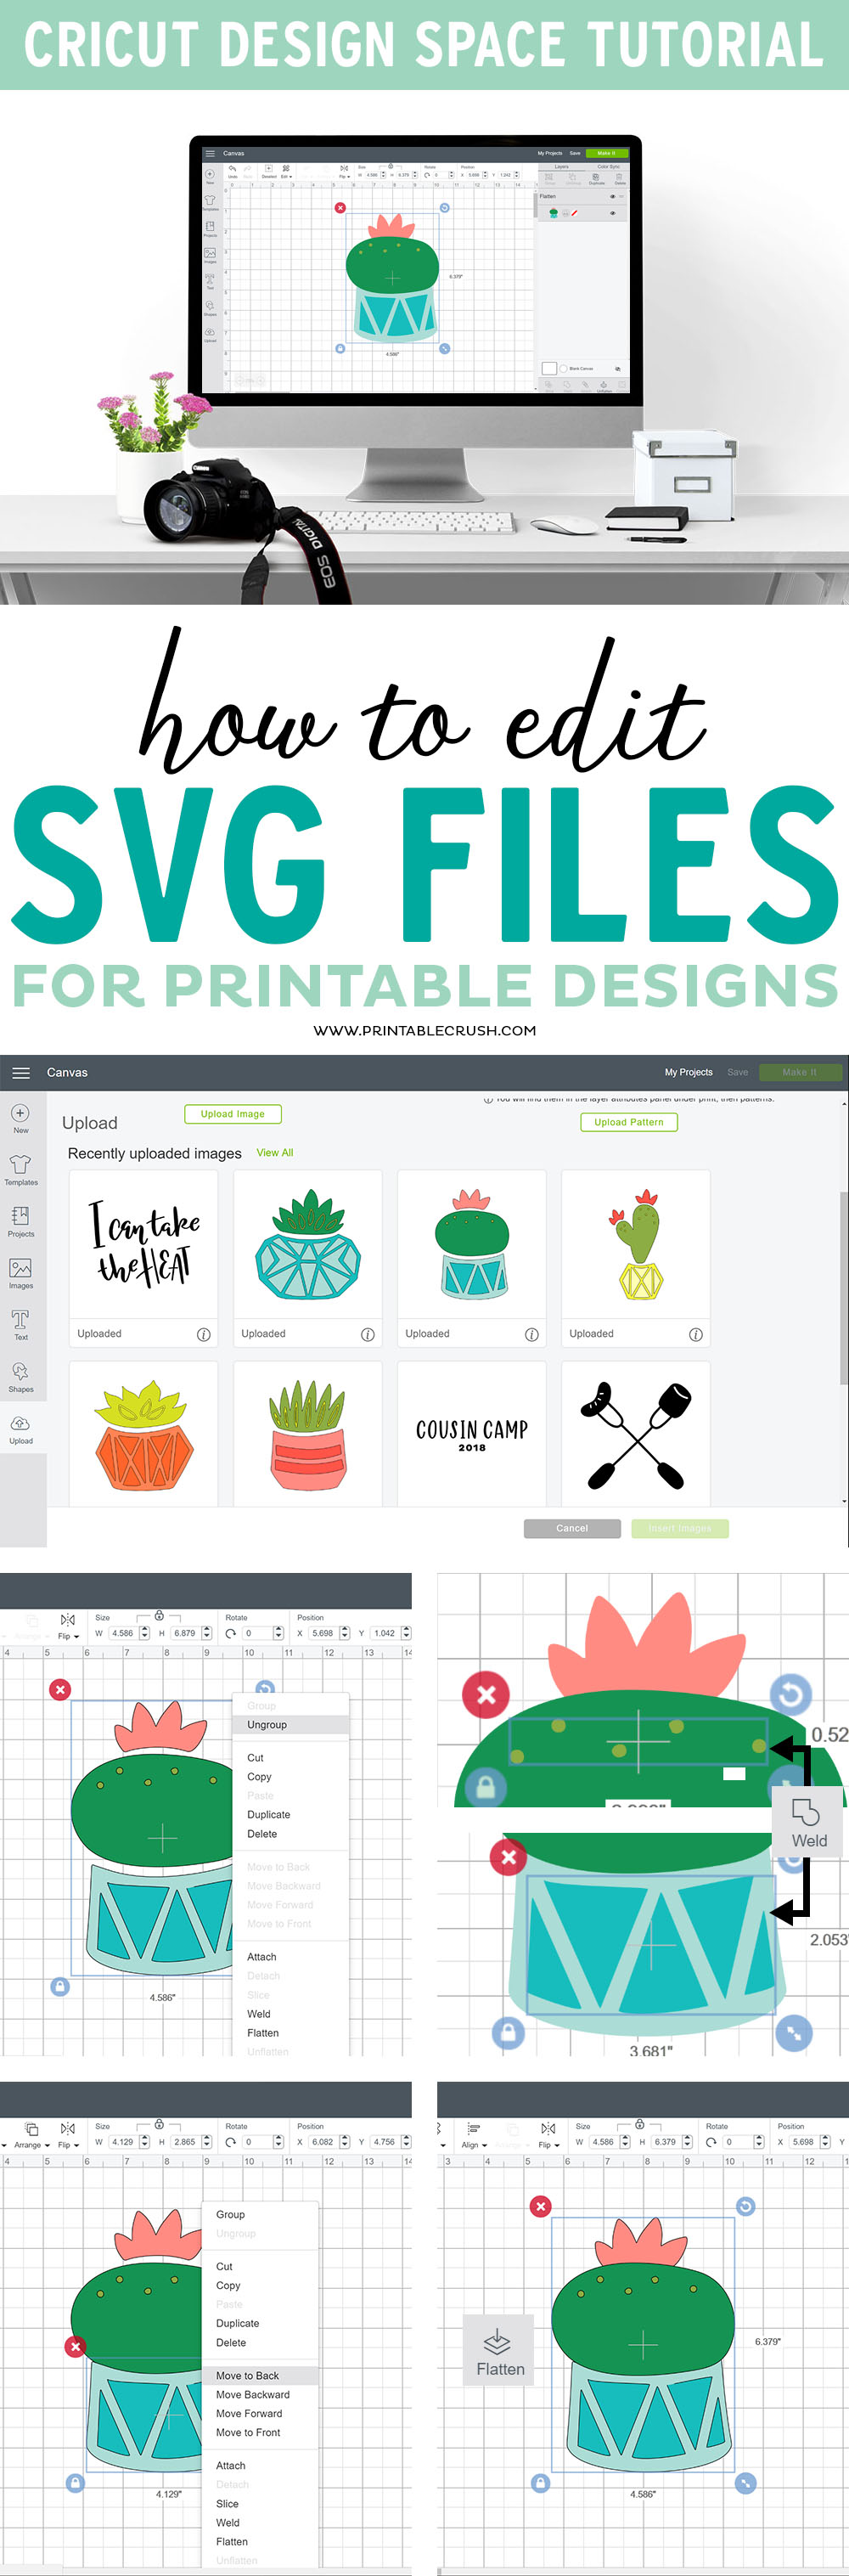 Turn any SVG File into a printable with this tutorial on How to Edit SVG Files for Printables in Cricut Design Space.  #cricutmade #cricutdesignspace #cricuttutorial via @printablecrush